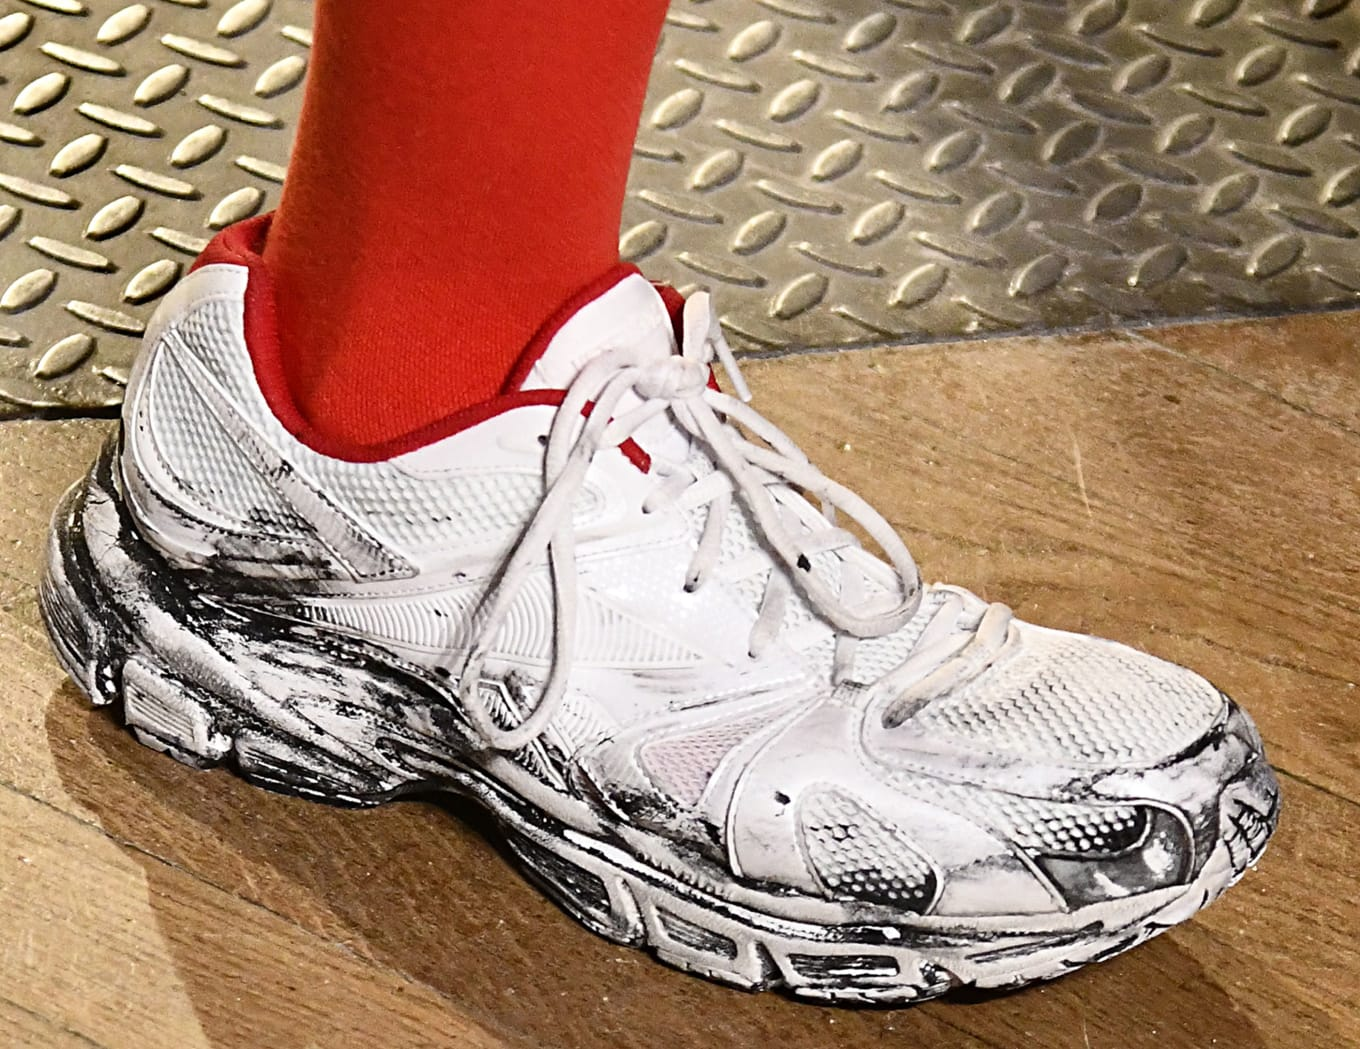 3b75830e0ce3 Vetements x Reebok Premier Running Fall Winter 2019 Release Date ...